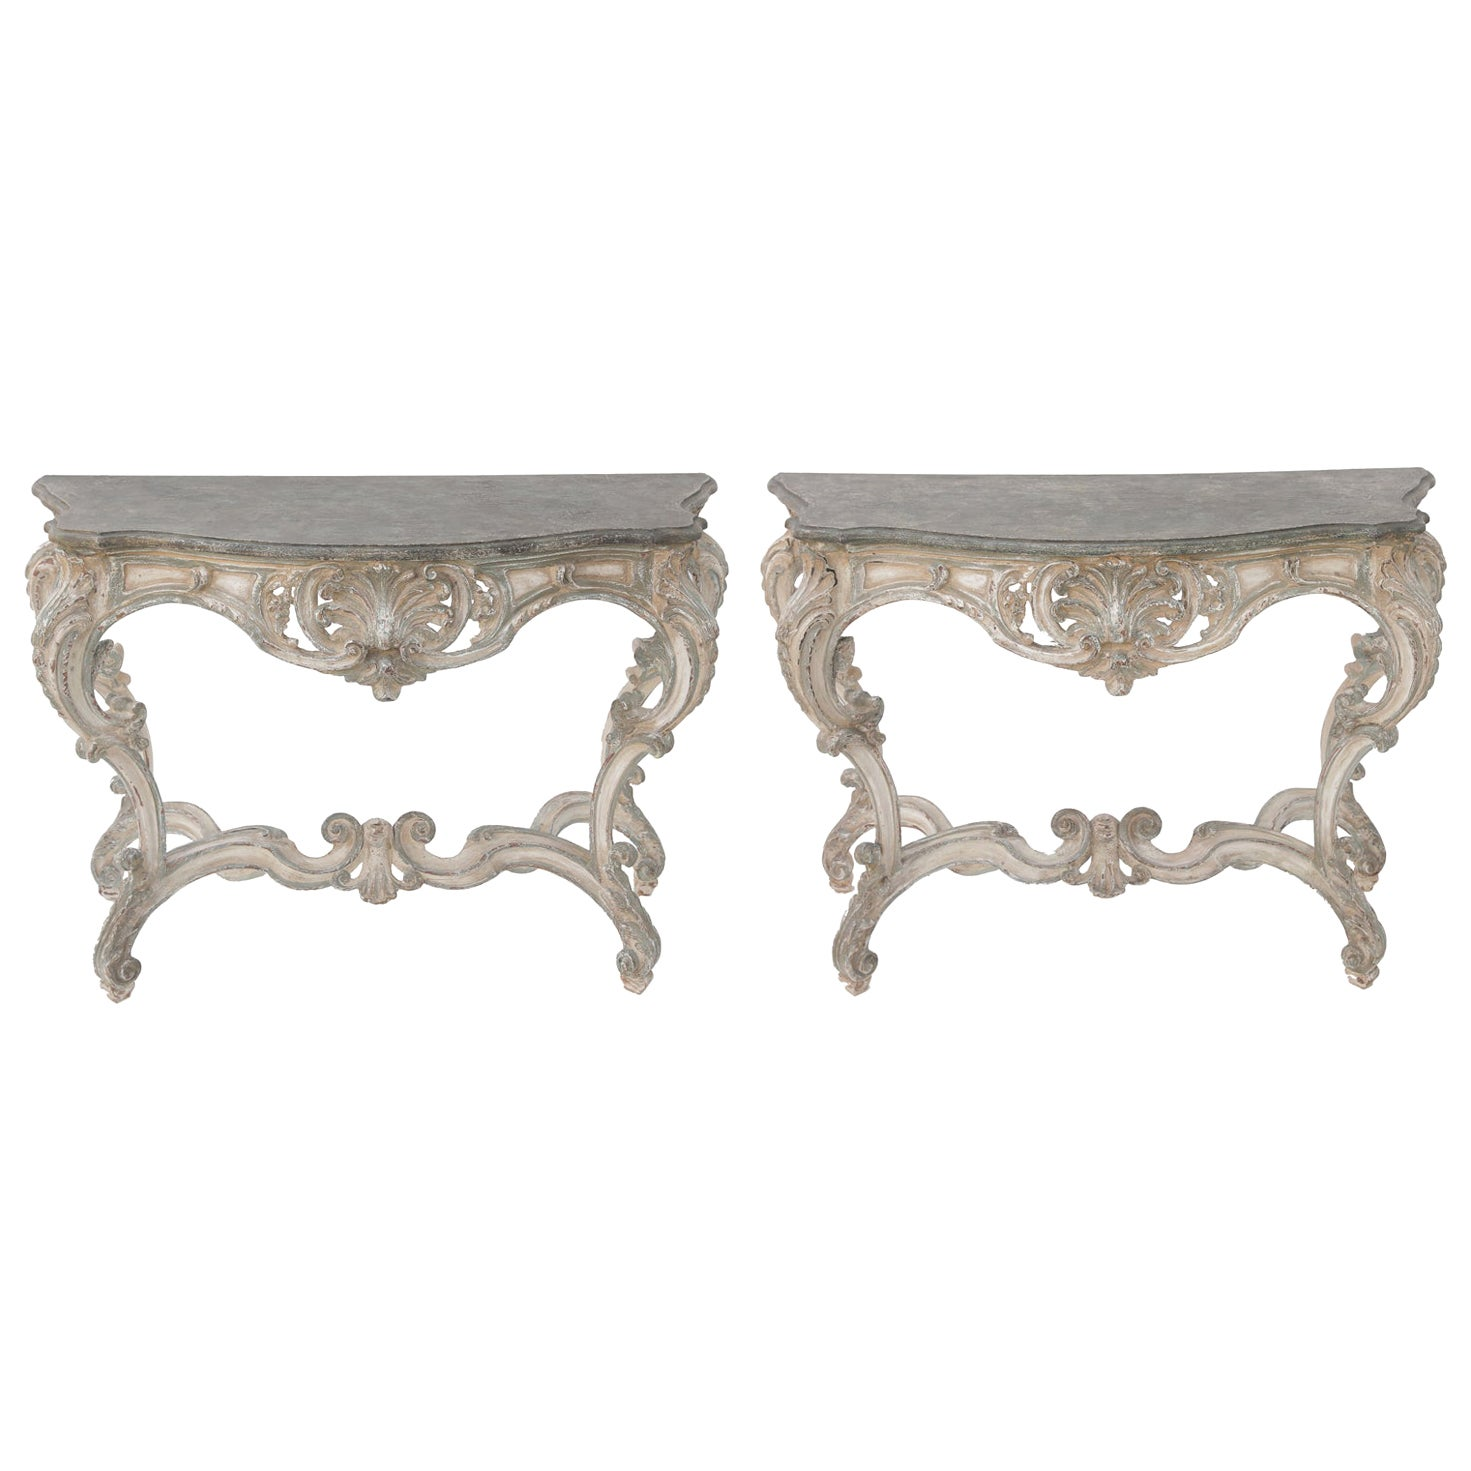 Pair of 18th Century Painted Rococo Consoles